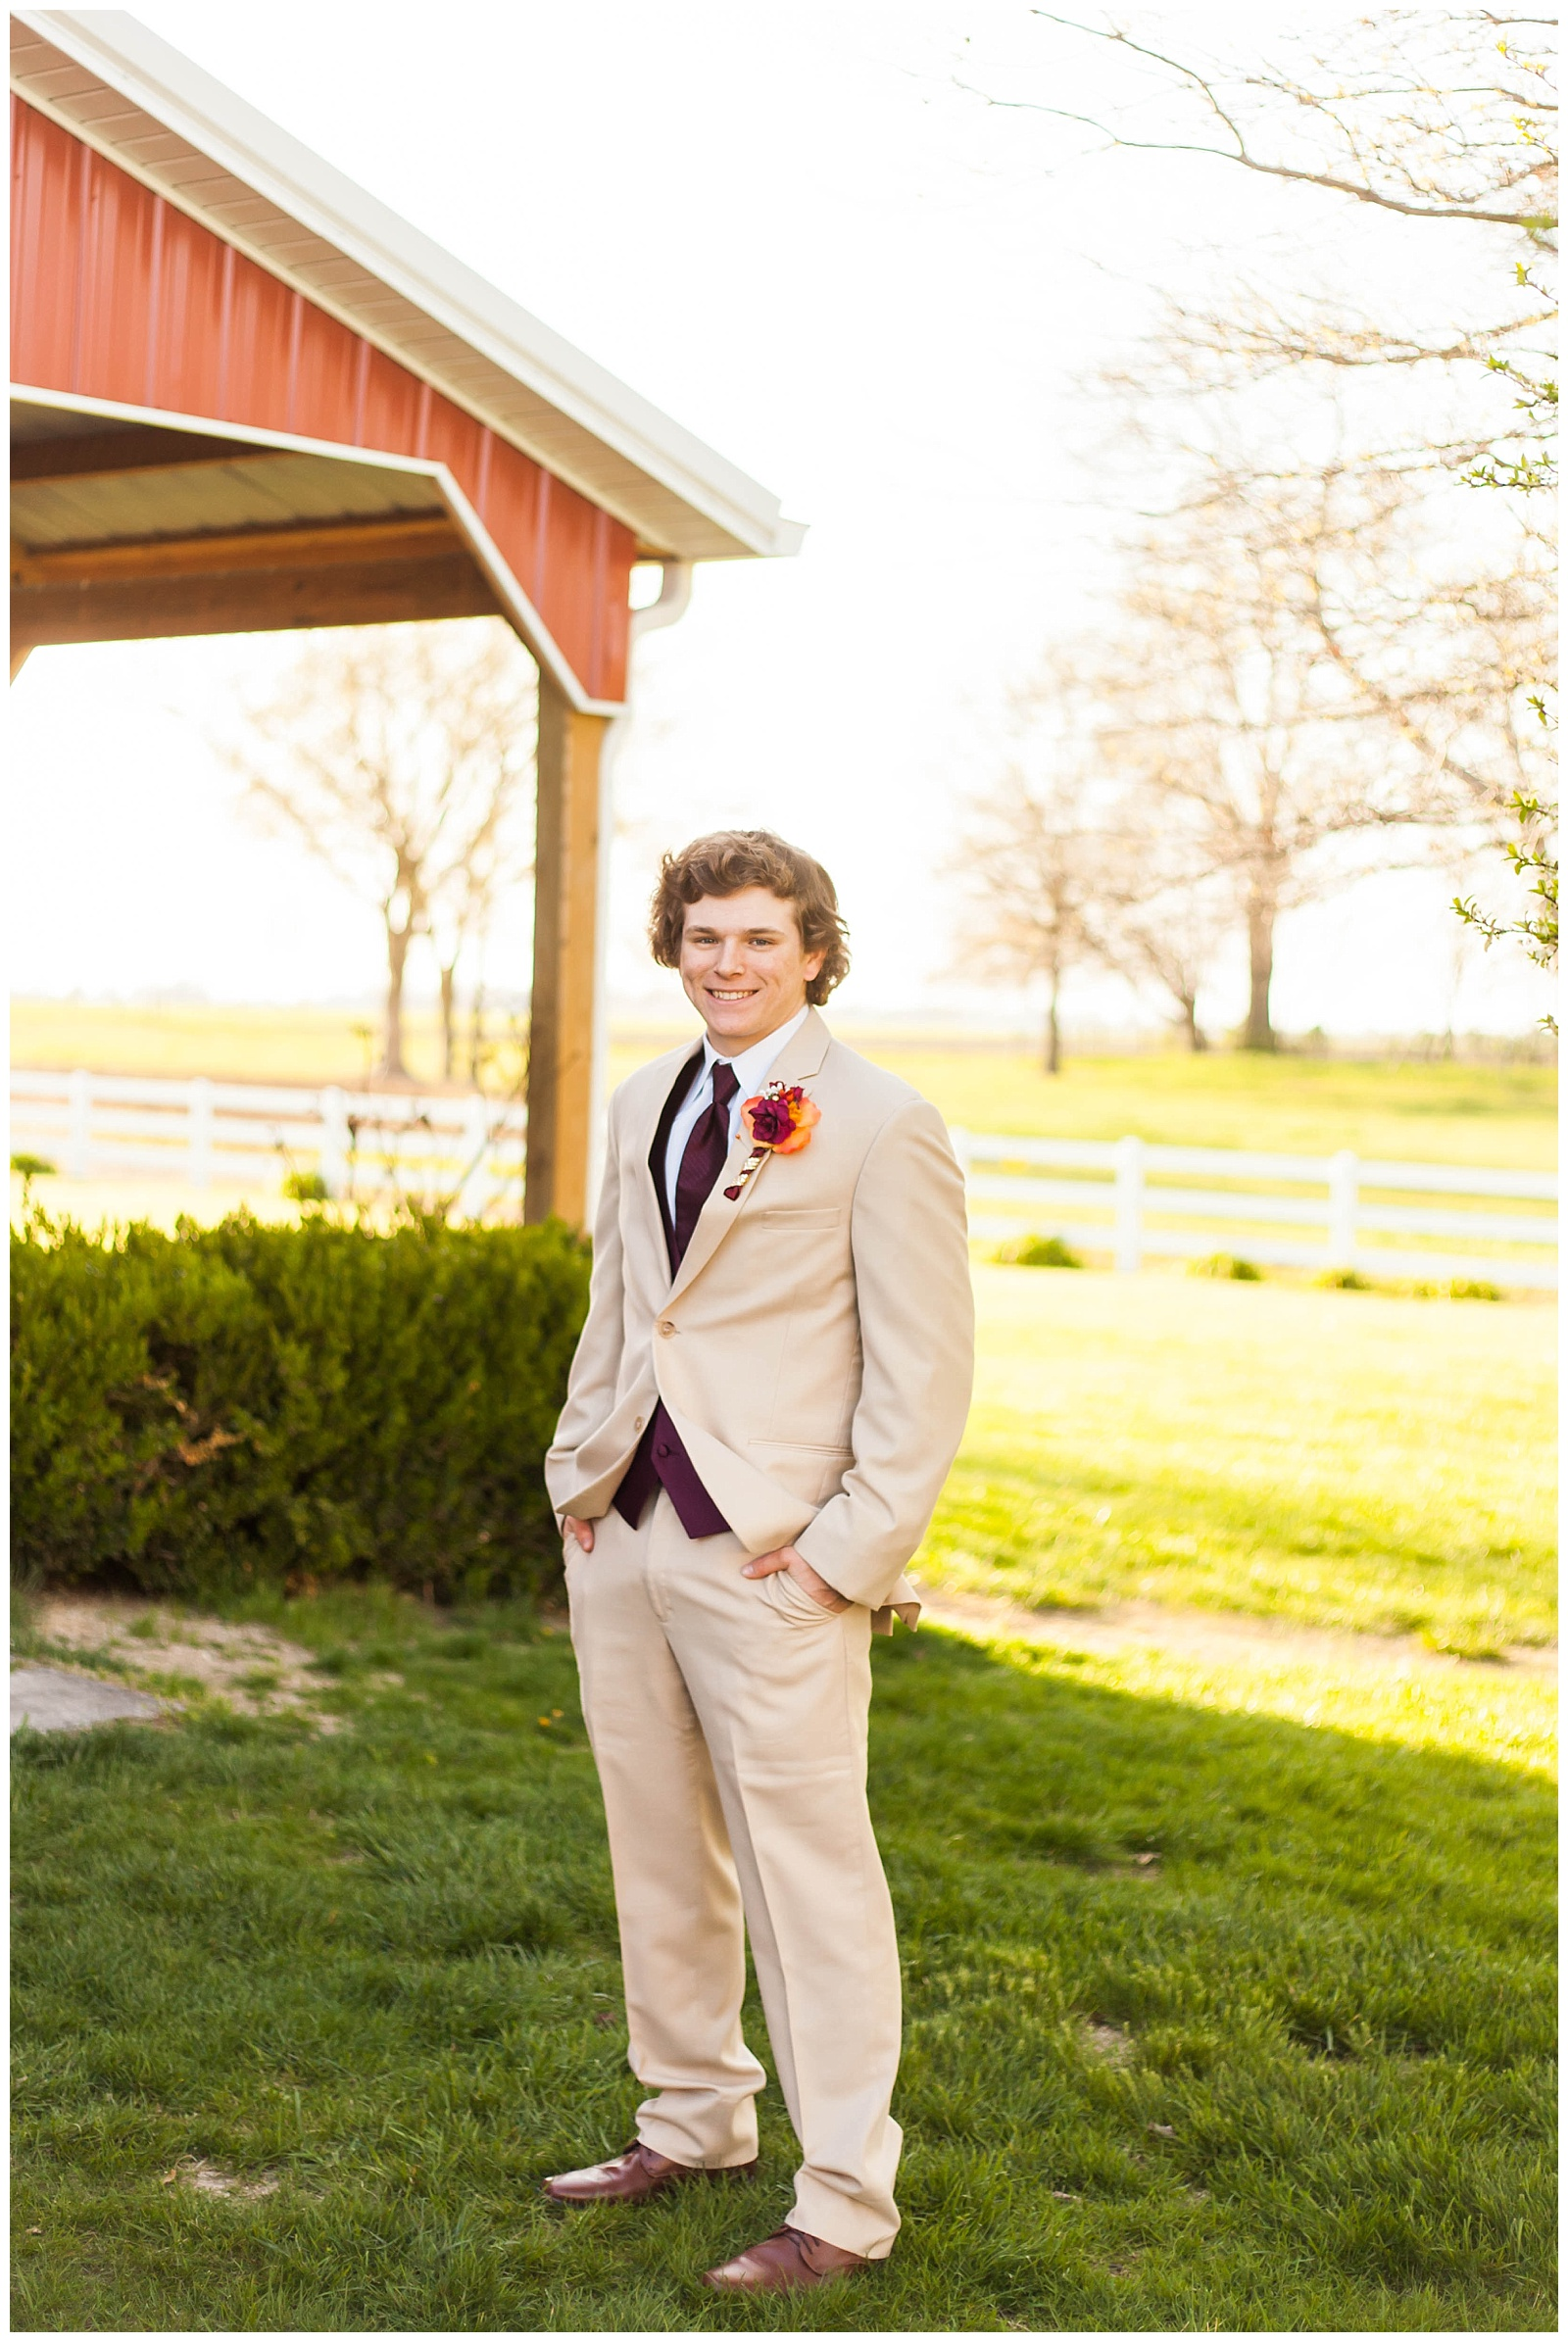 Southern Illinois Prom Pictures || Centralia IL, Crooked Creek Winery